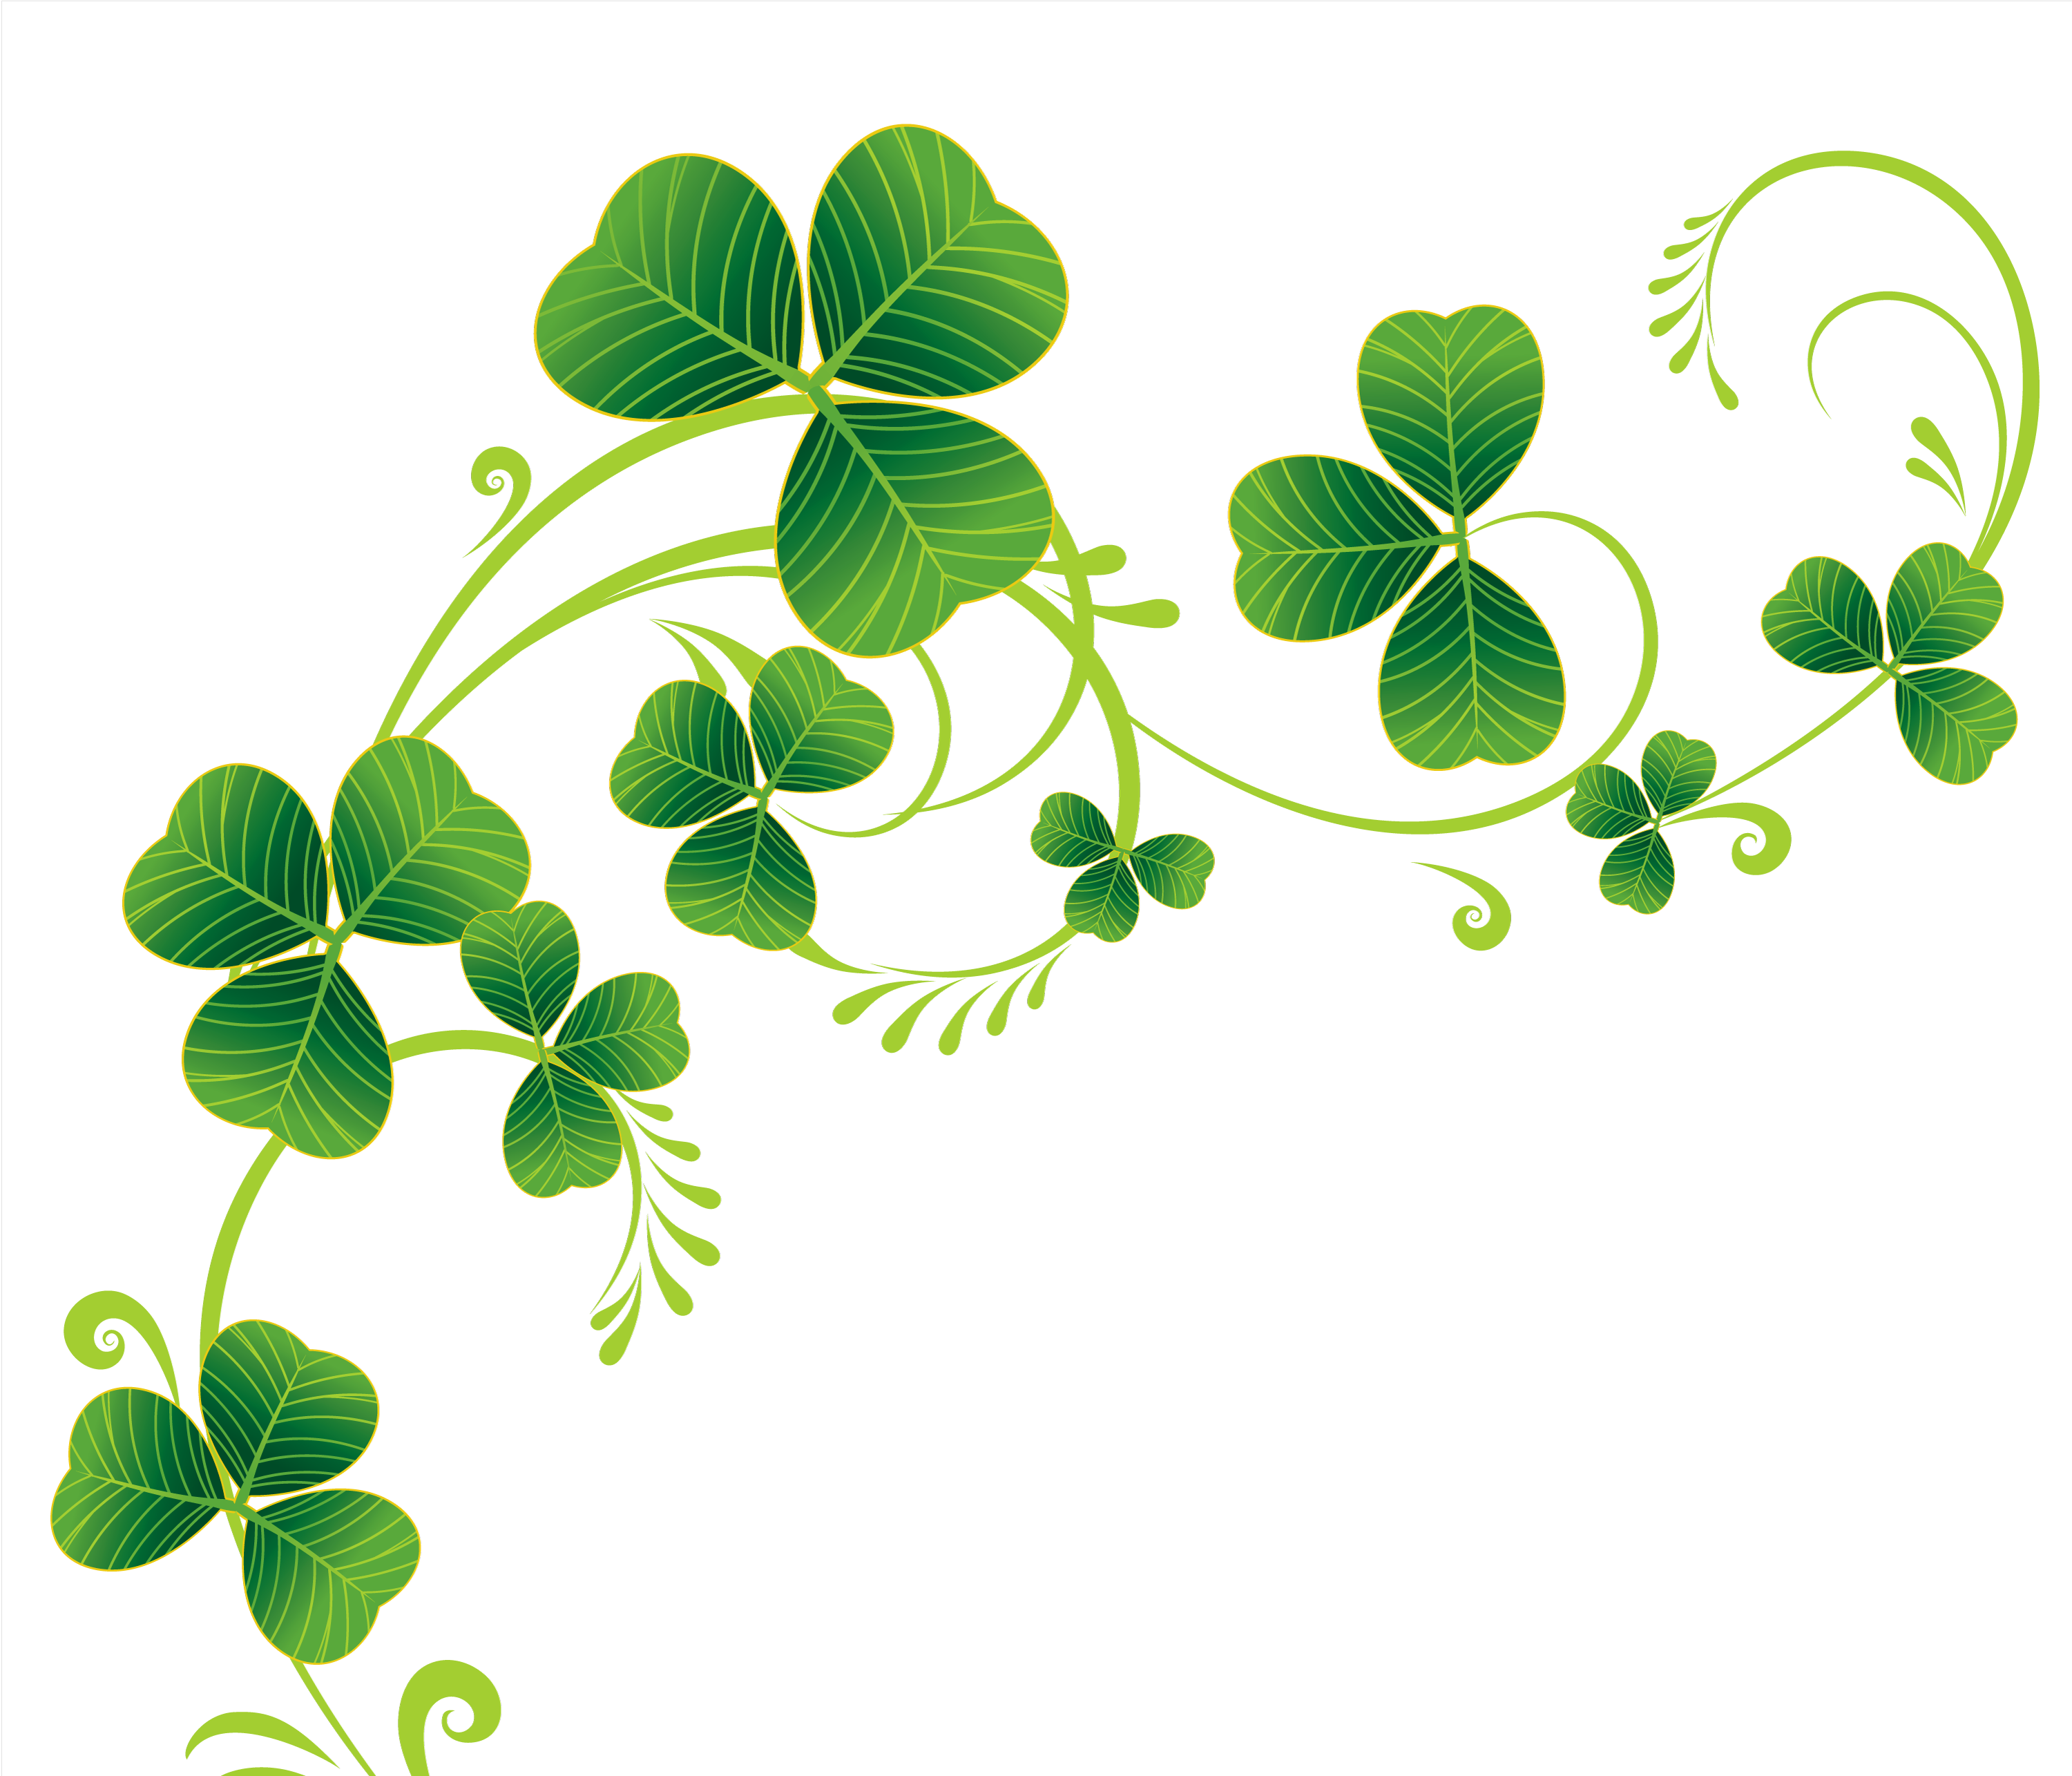 Heart clover clipart graphic freeuse download Border Of Shamrocks Clipart - Clipart Kid | The Stirling | Pinterest ... graphic freeuse download